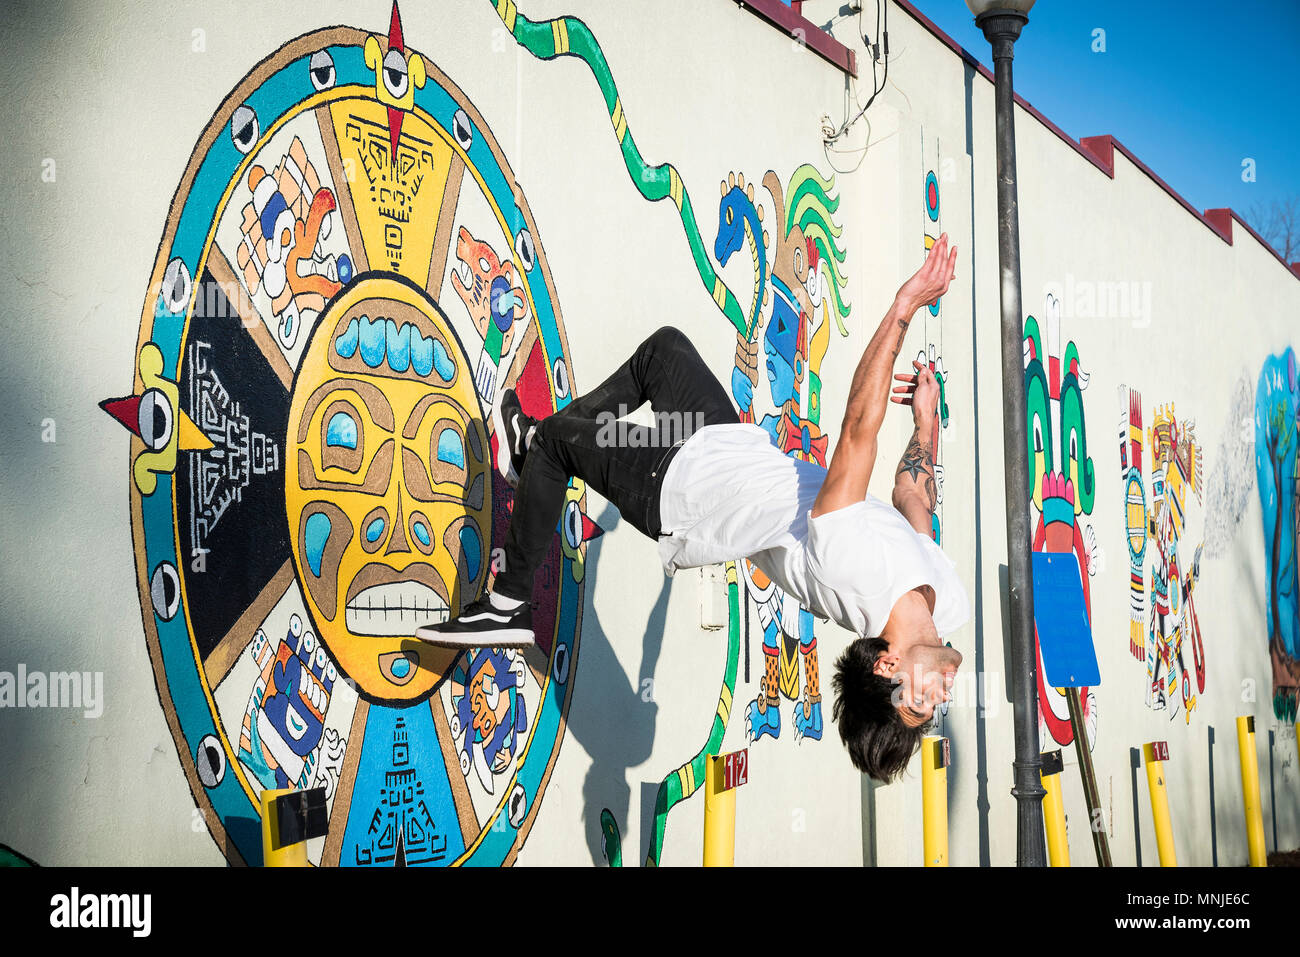 Young parkour athlete doing backflip off wall covered in street art, Denver, Colorado, USA - Stock Image